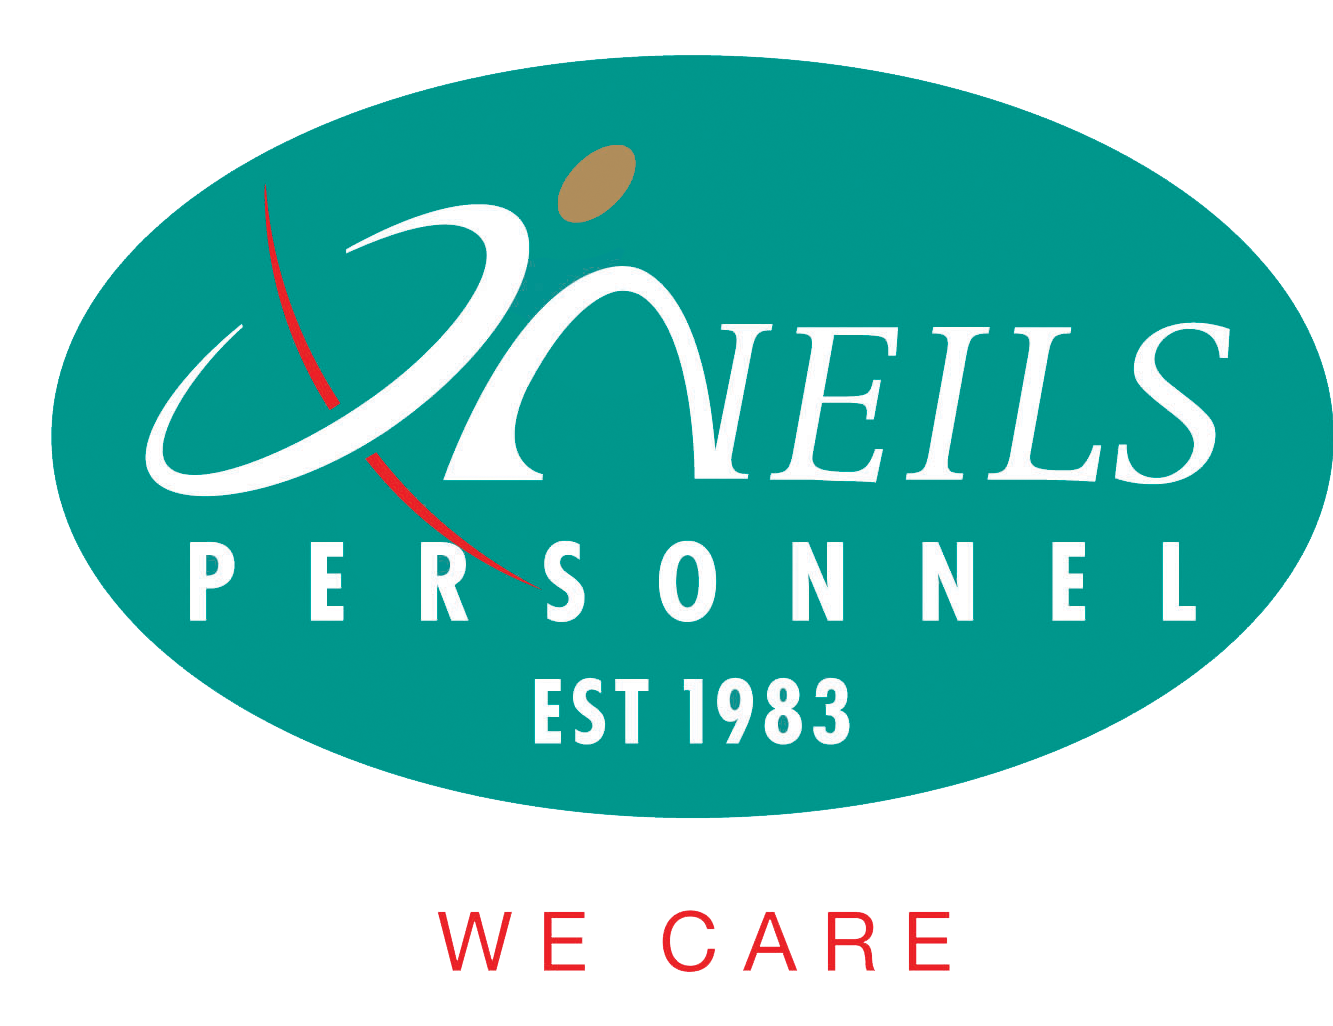 O'Neils Personnel